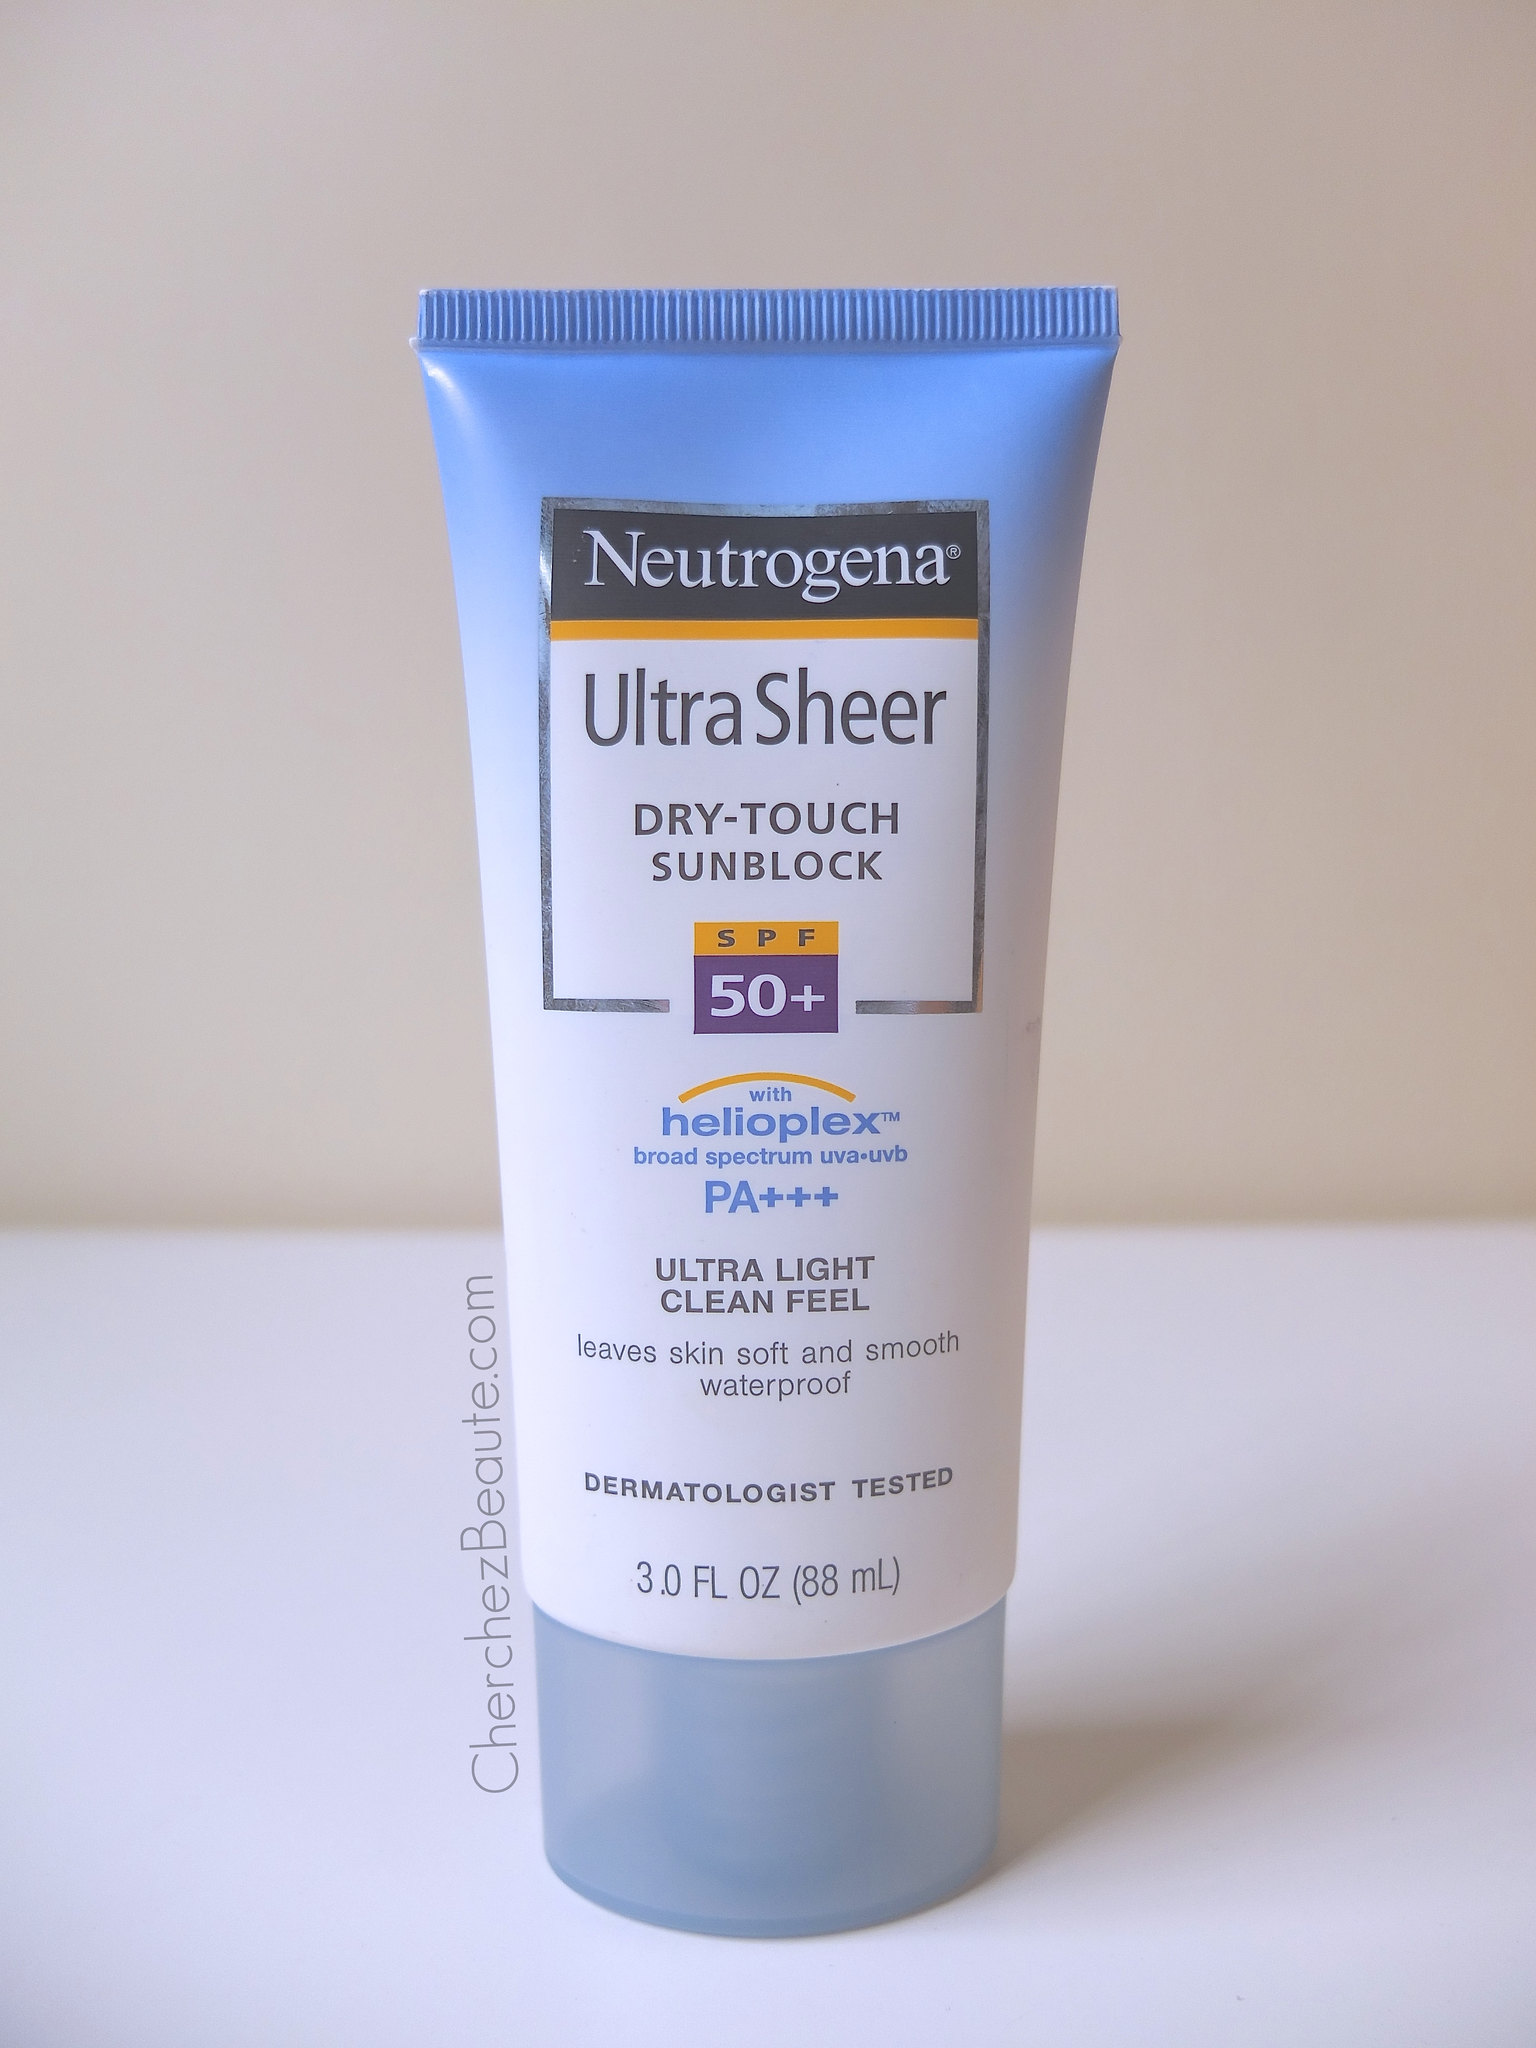 Neutrogena Ultra Sheer Dry-Touch Sunblock SPF50+ PA+++